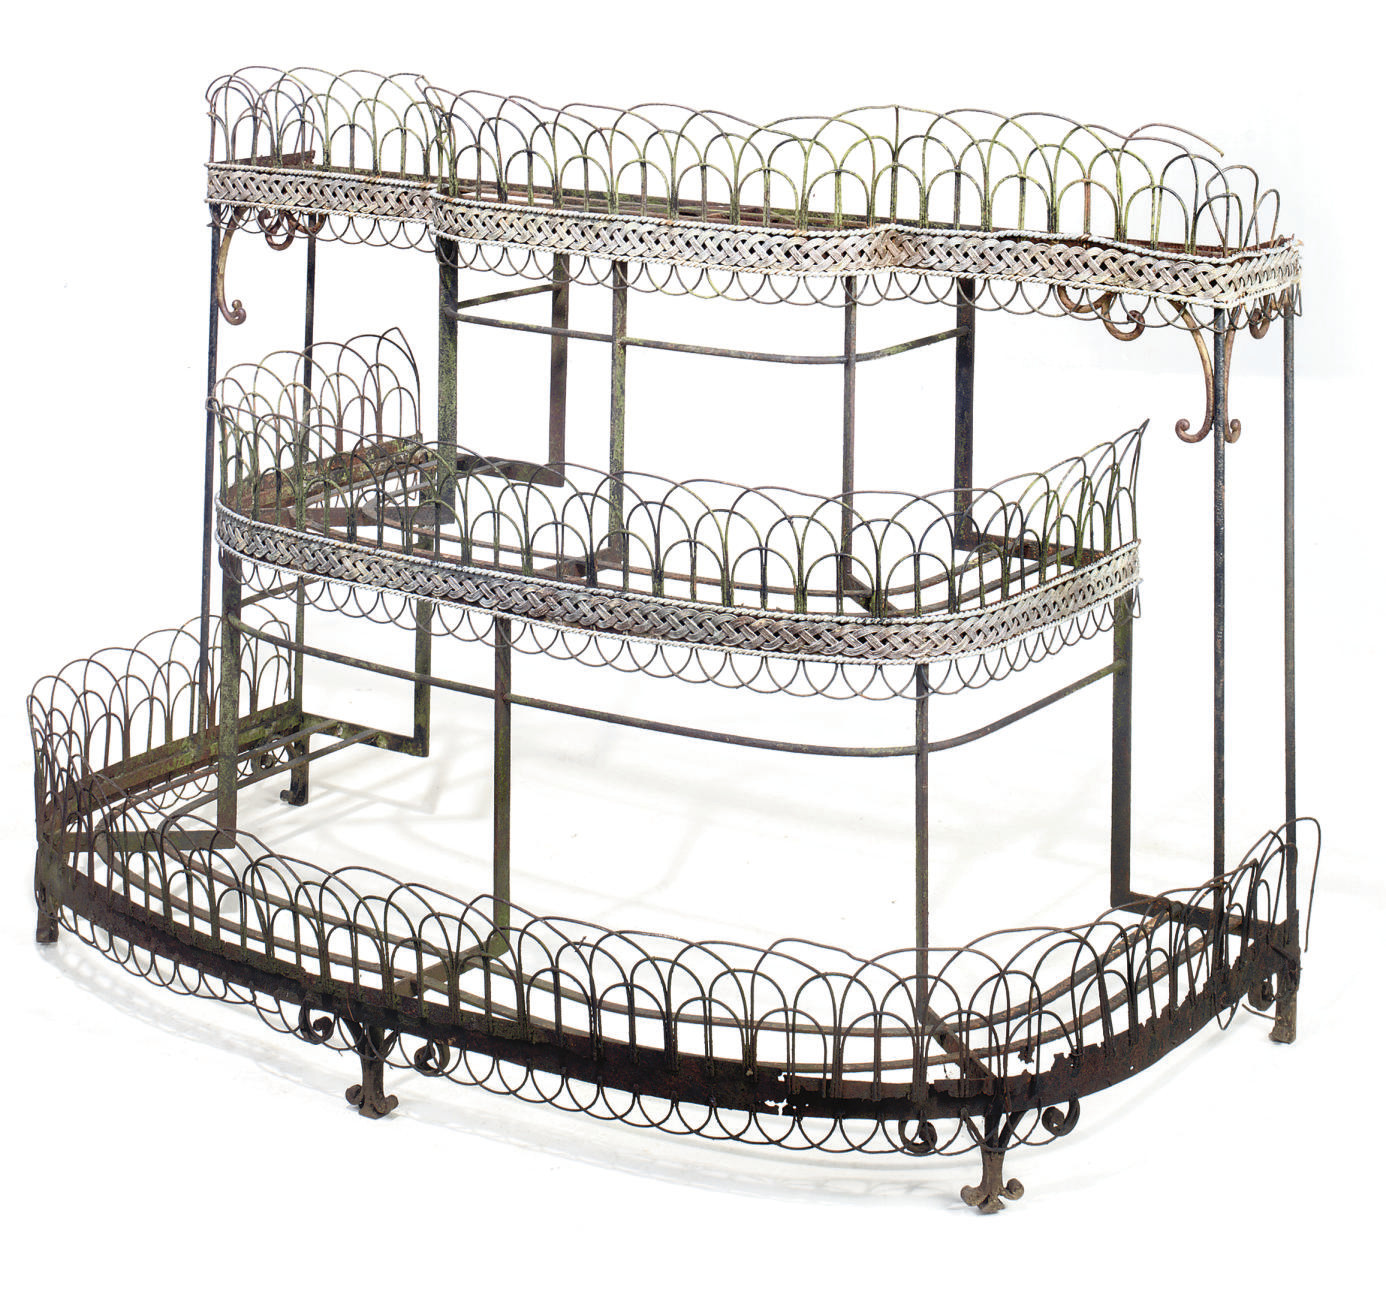 A REGENCY WROUGHT IRON AND WIRE-WORK THREE-TIER PLANT STAND